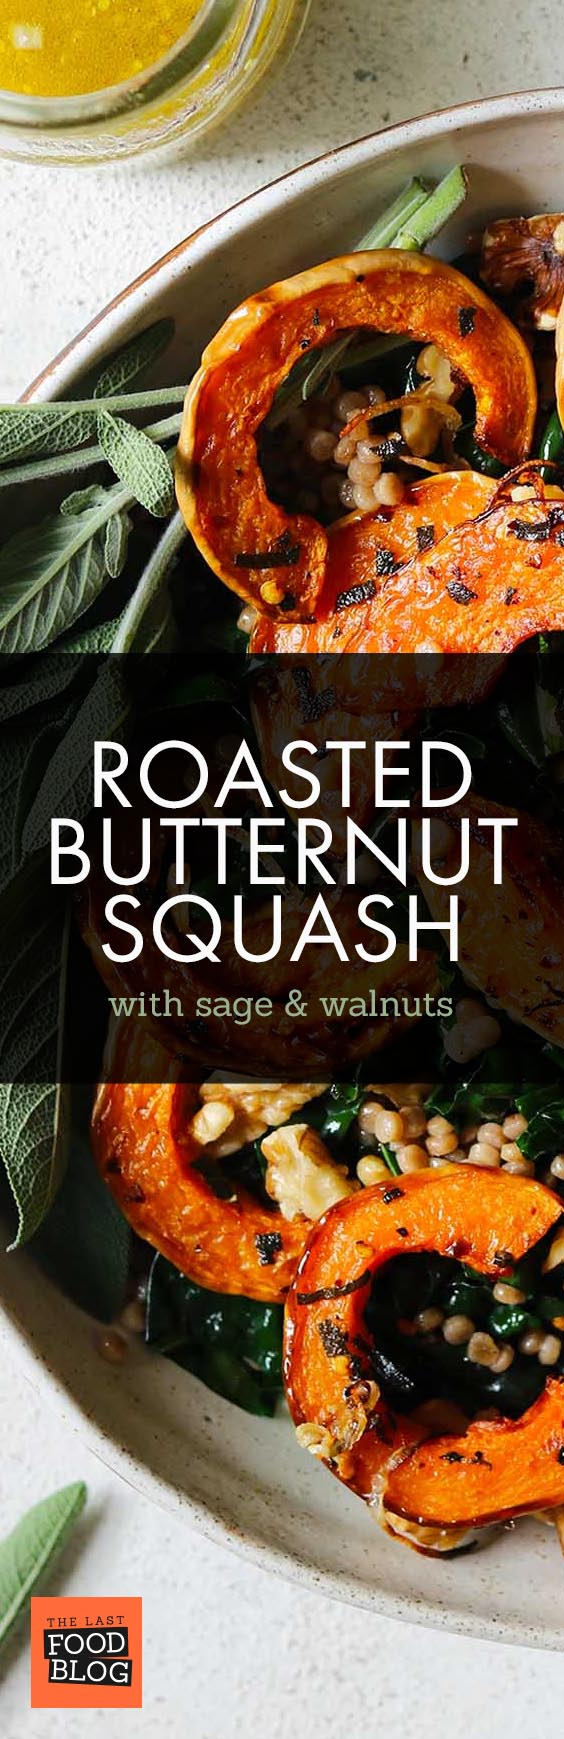 Roasted Butternut Squash with Sage & Walnuts - thelastfoodblog.com